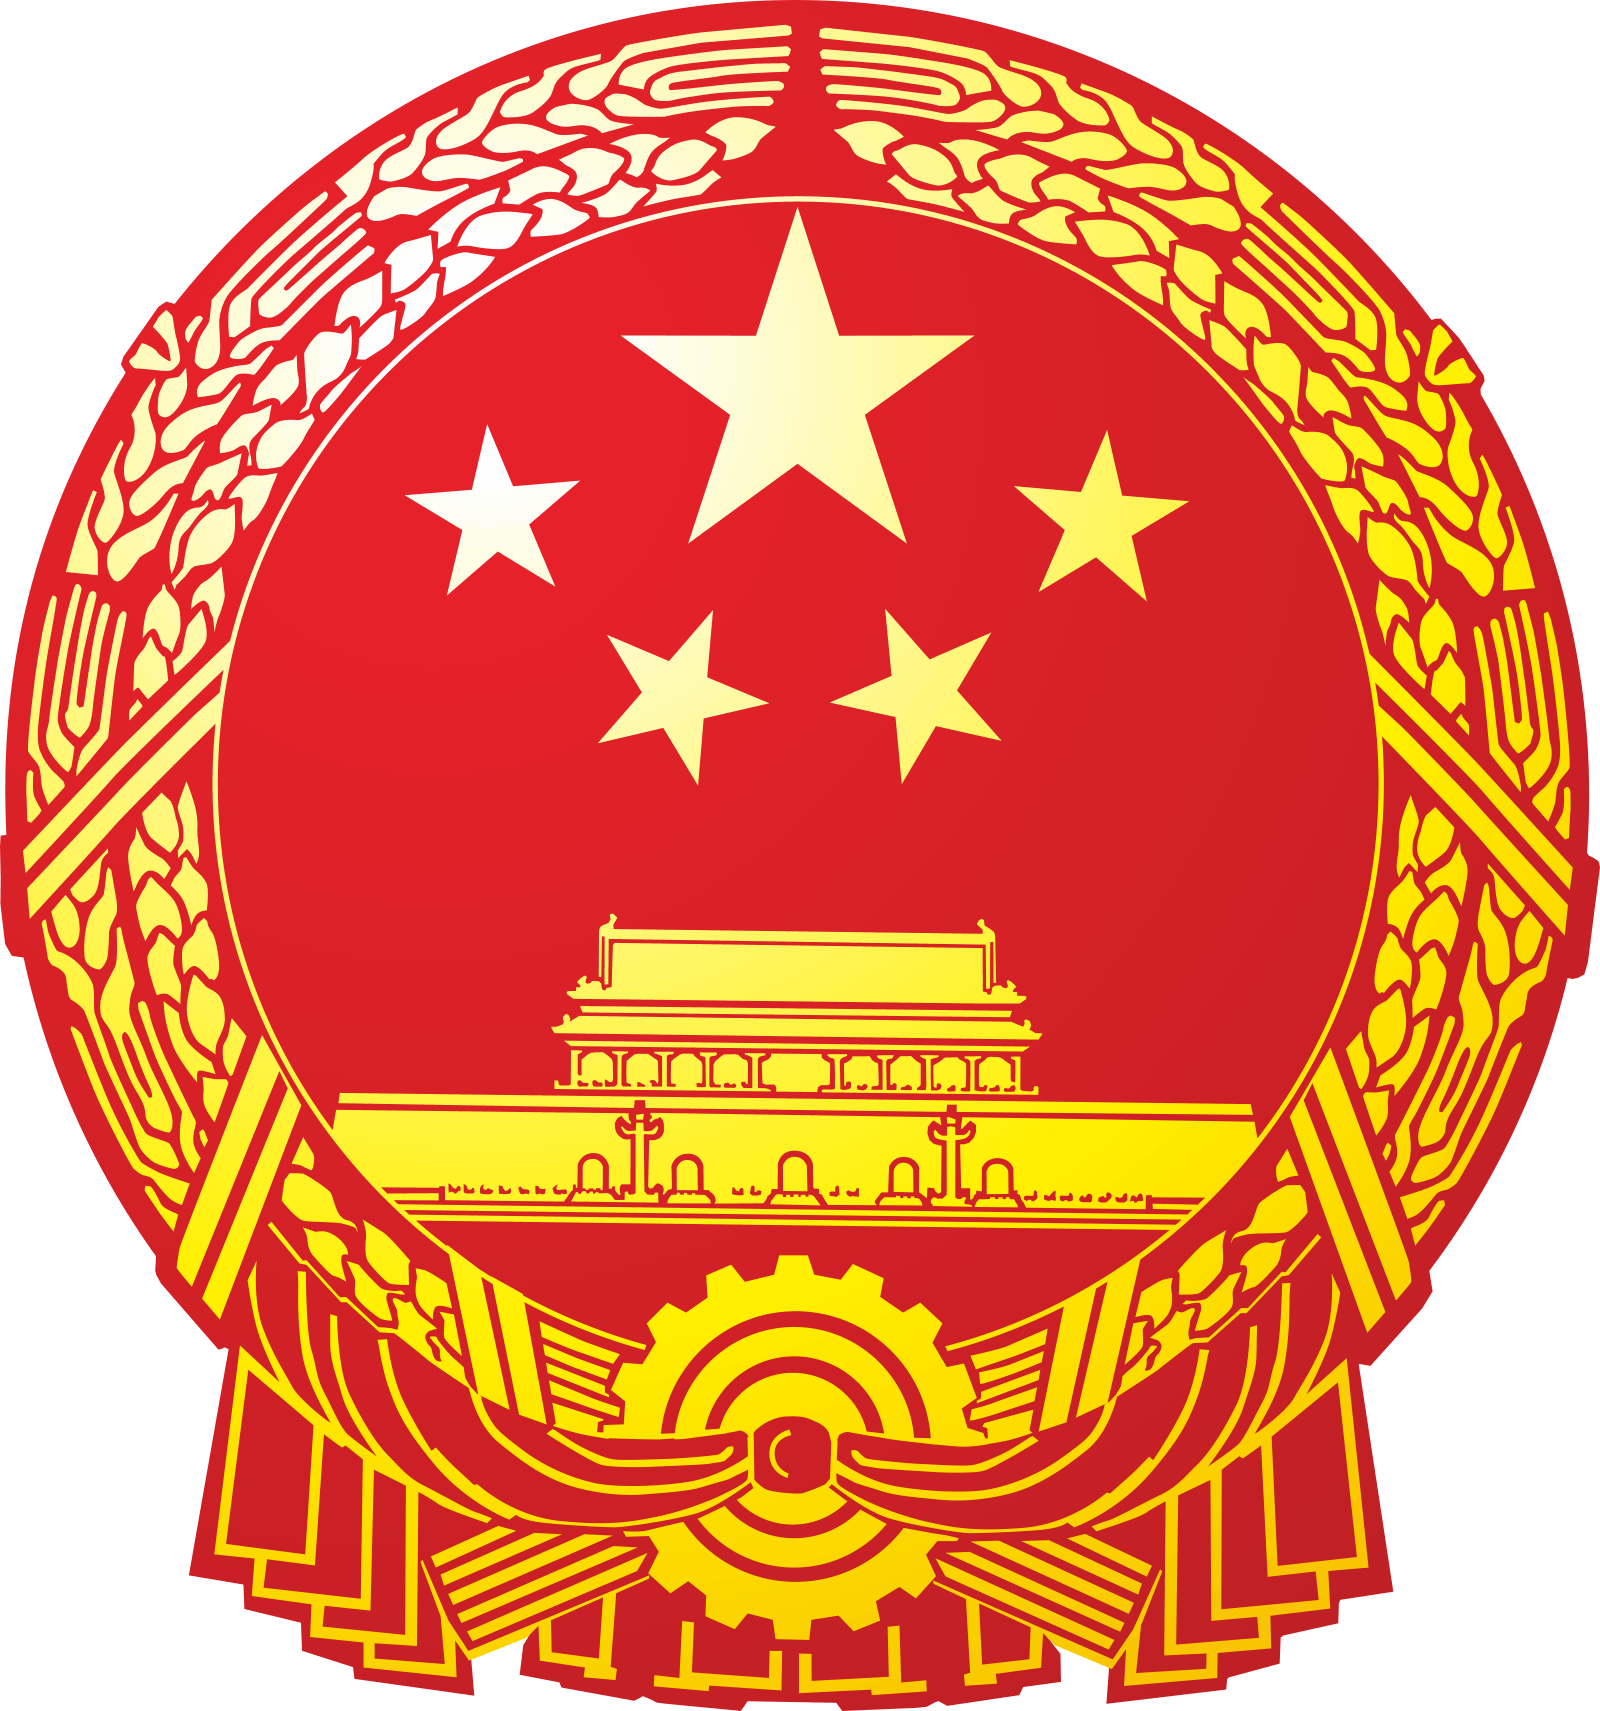 China's national emblem design - CorelDRAW Vectors CDR Free Download